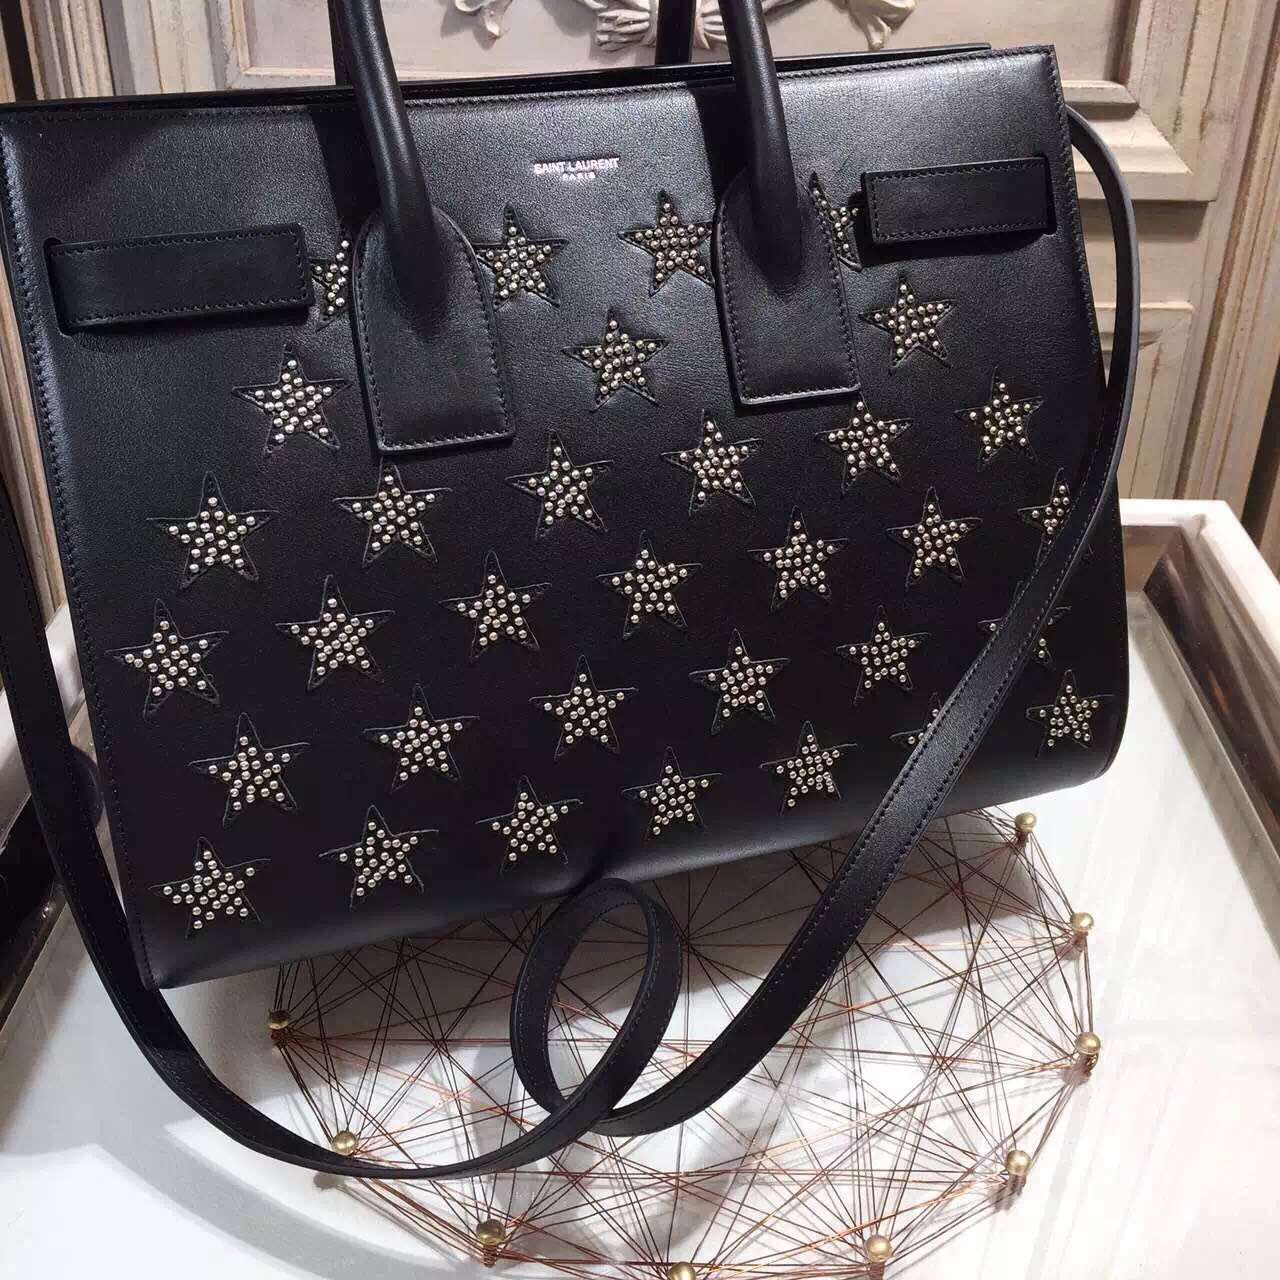 2015 New Saint Laurent Bag Cheap Sale-Saint Laurent Classic 32cm Sac De Jour Bag in Black Calf Leather with Star Studs